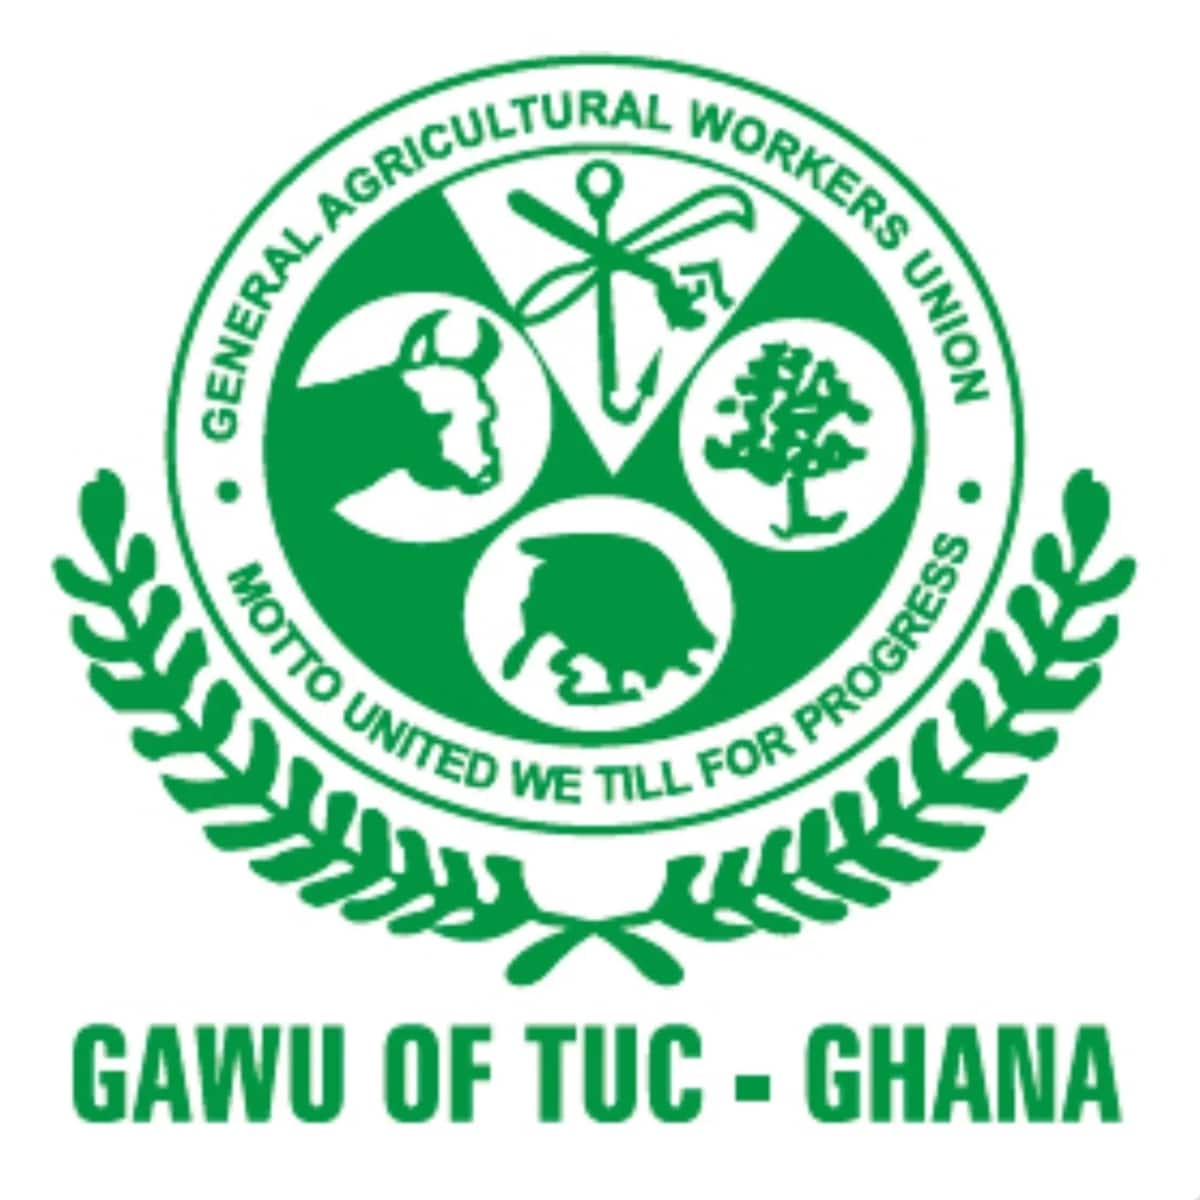 There will be no food in Ghana by December- Agric Workers Union